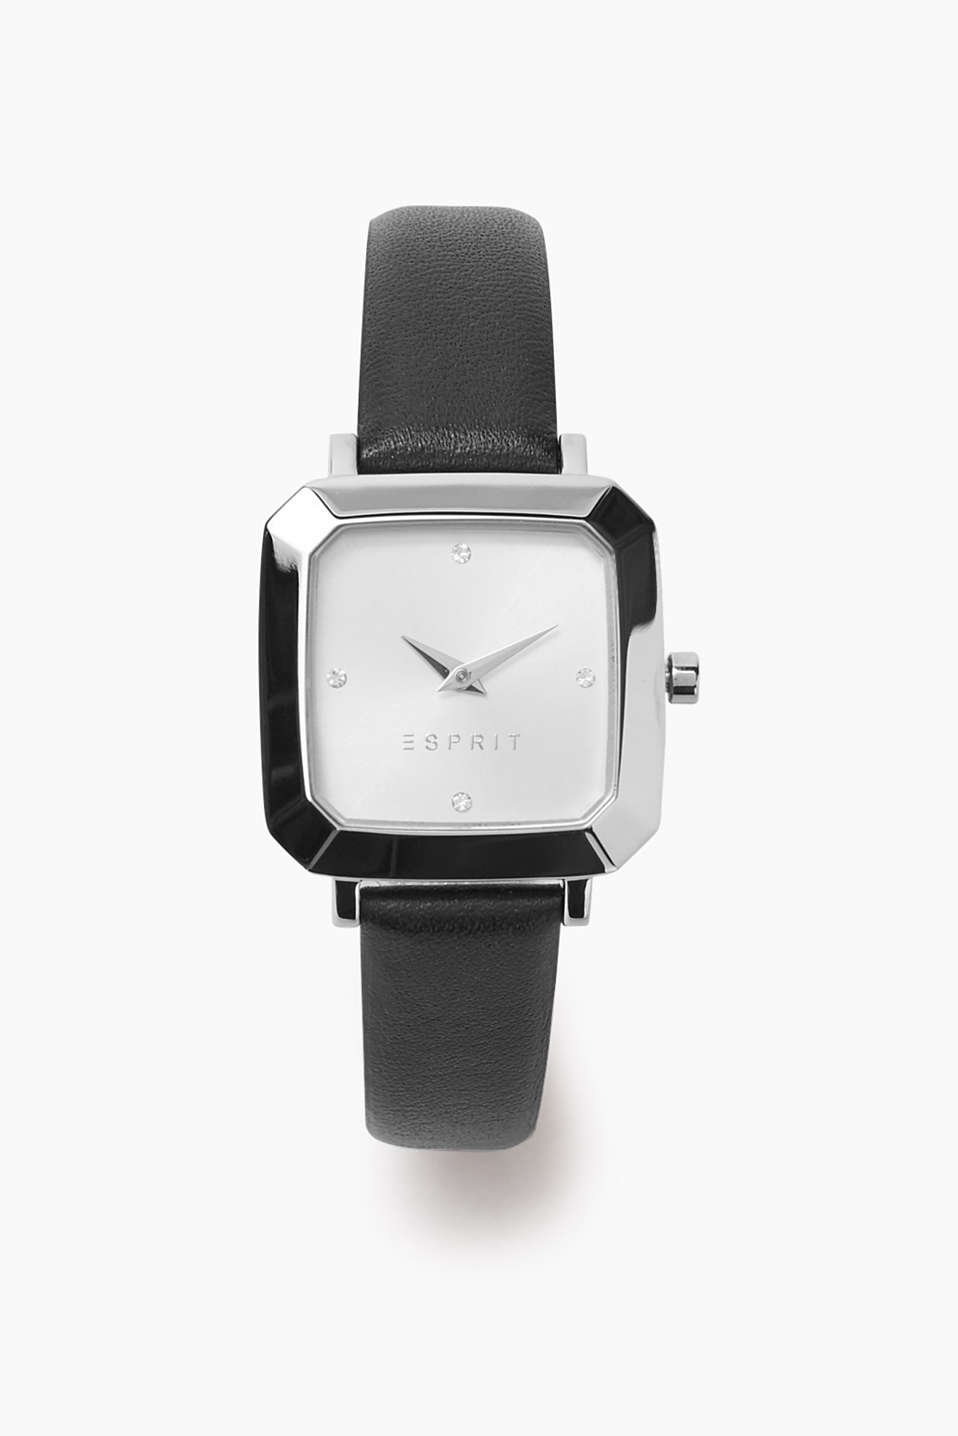 Watch with square stainless steel casing, dial with zirconia and leather strap, approx. 28 mm wide